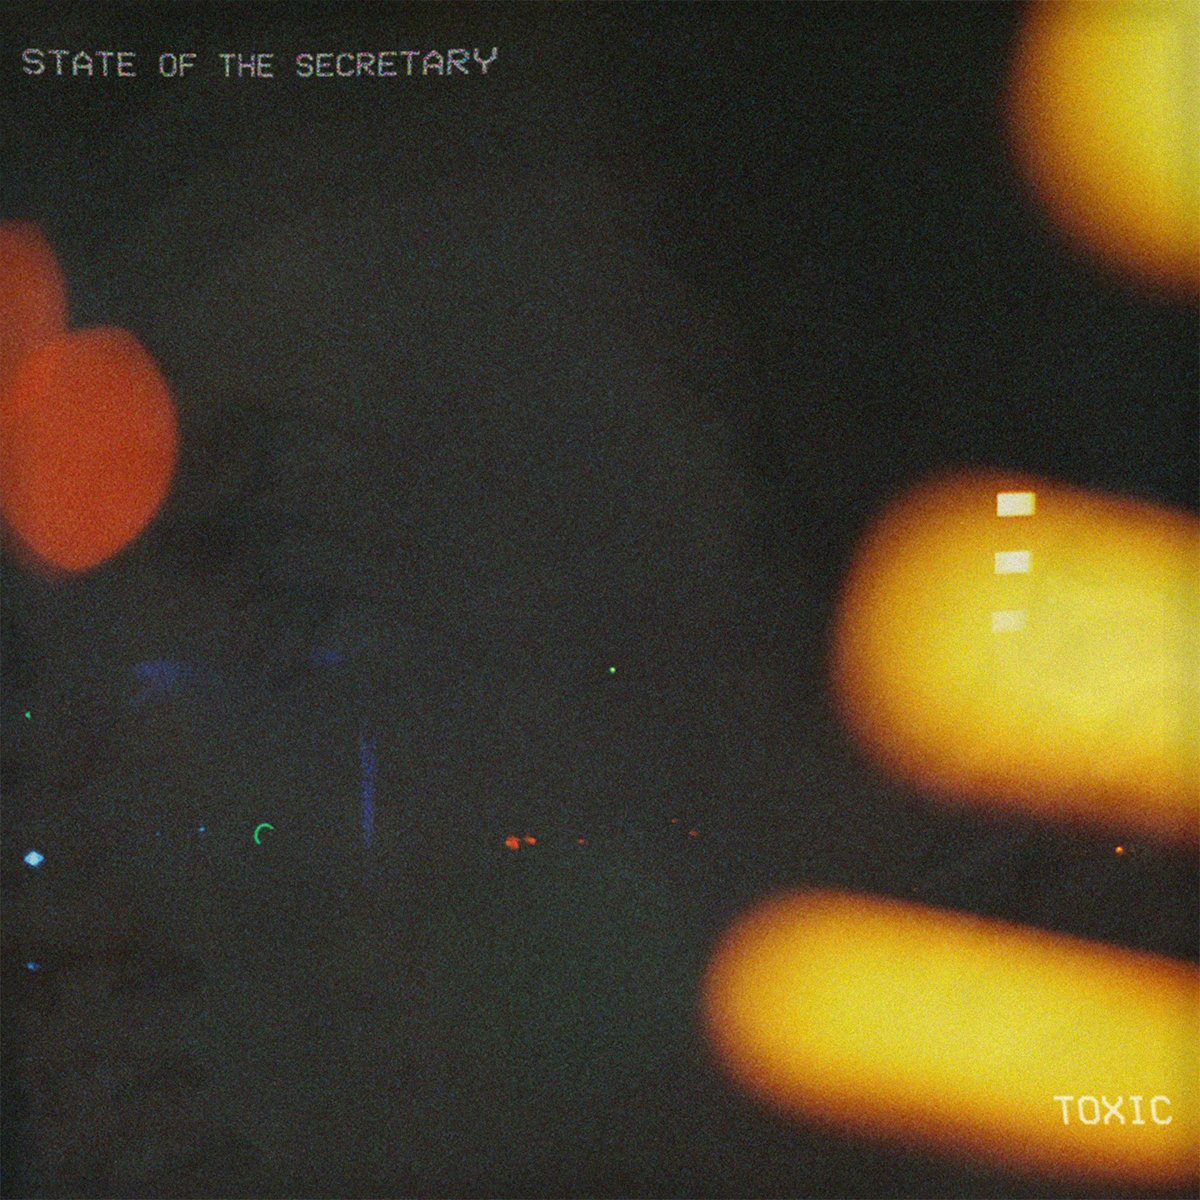 State of the Secretary